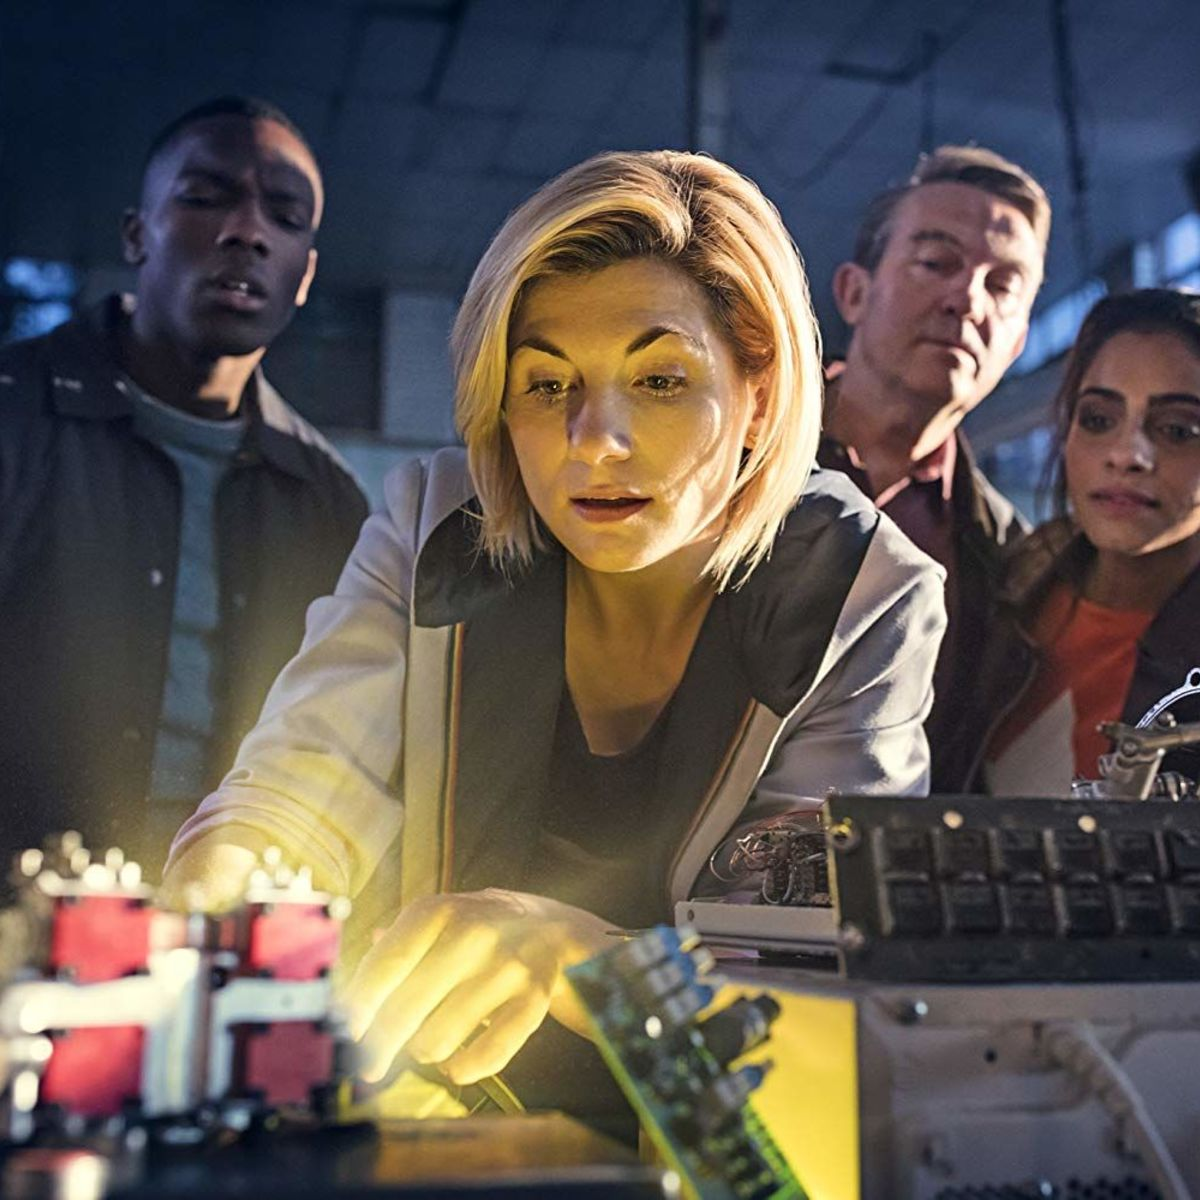 Jodie Whittaker's Doctor Who will be back - but not until 2020